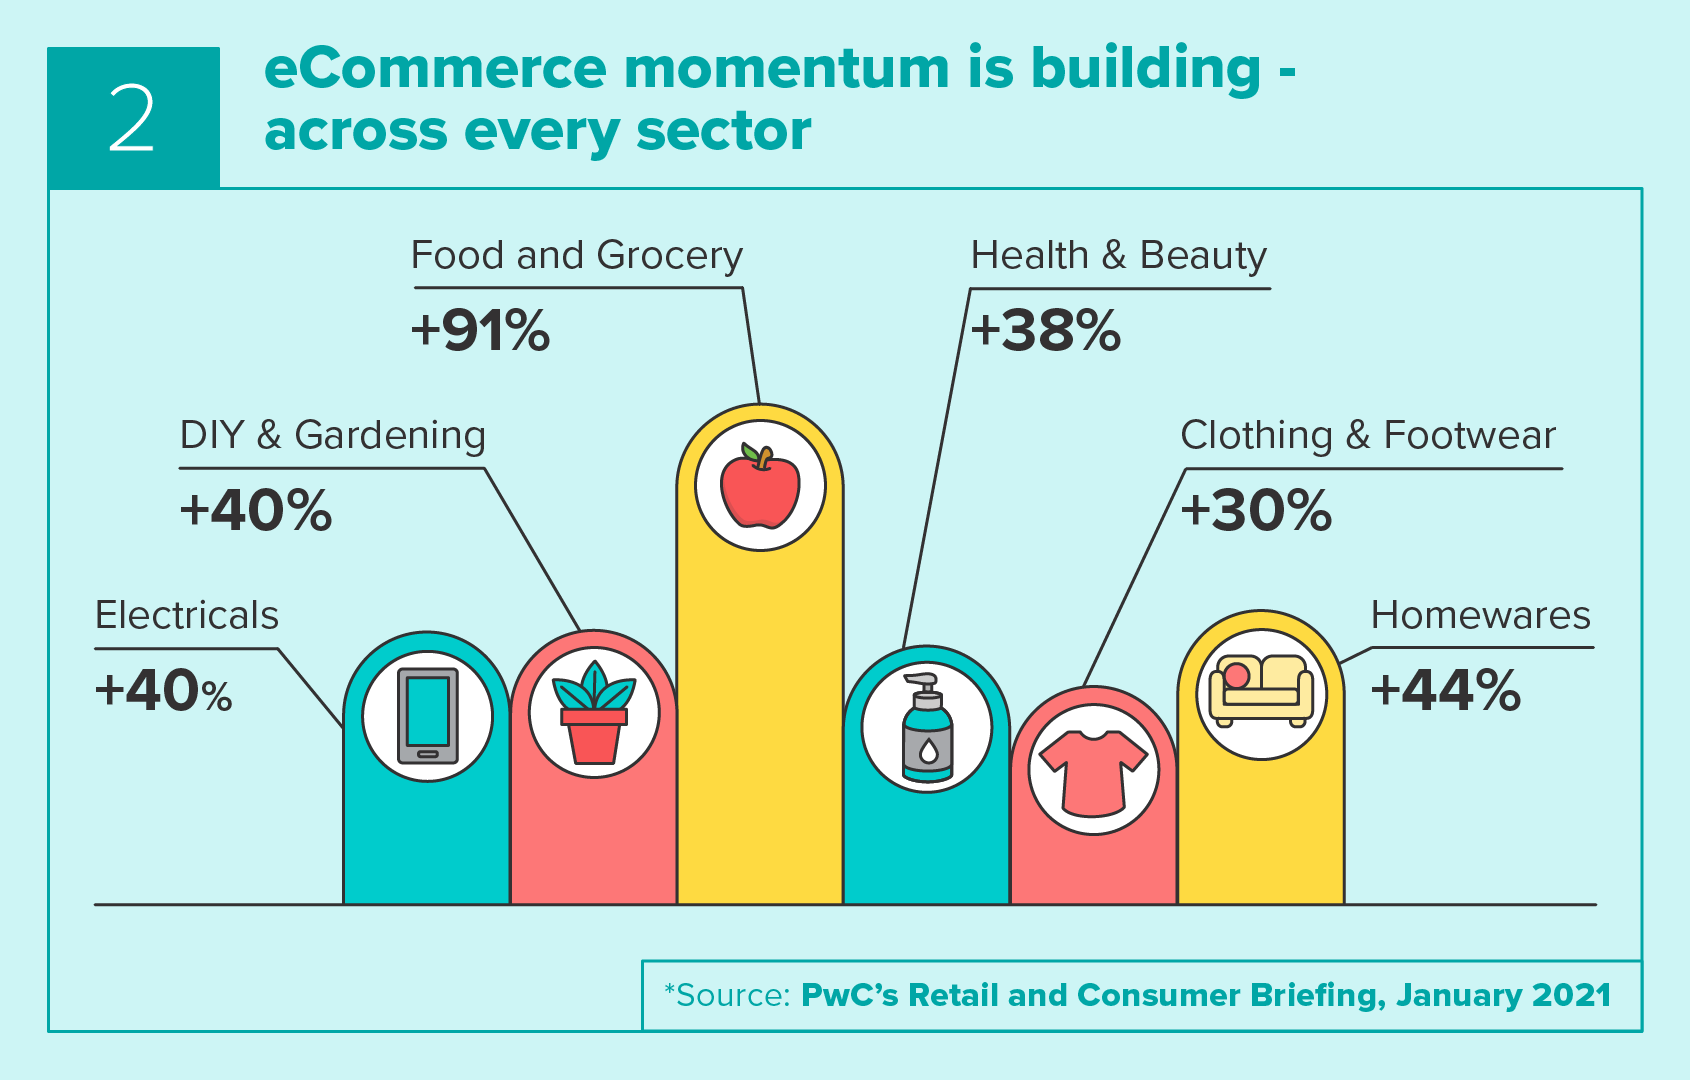 eCommerce momentum is building across every sector